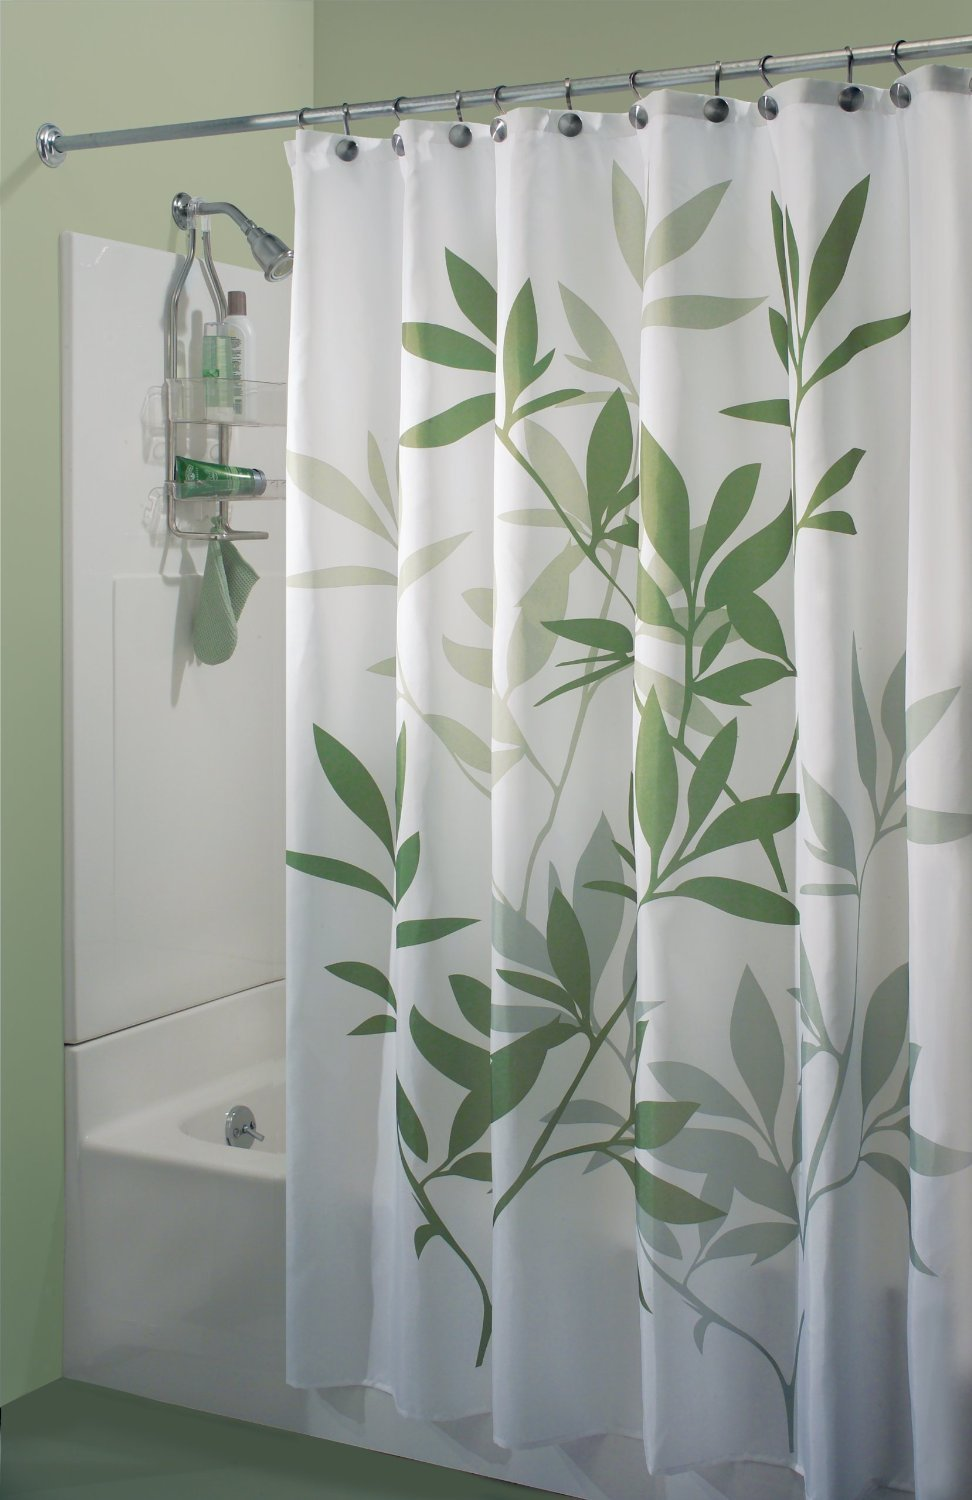 Green shower curtains - Amazon Com Interdesign Leaves Shower Curtain 72 By 72 Inch Gray Mint Home Kitchen